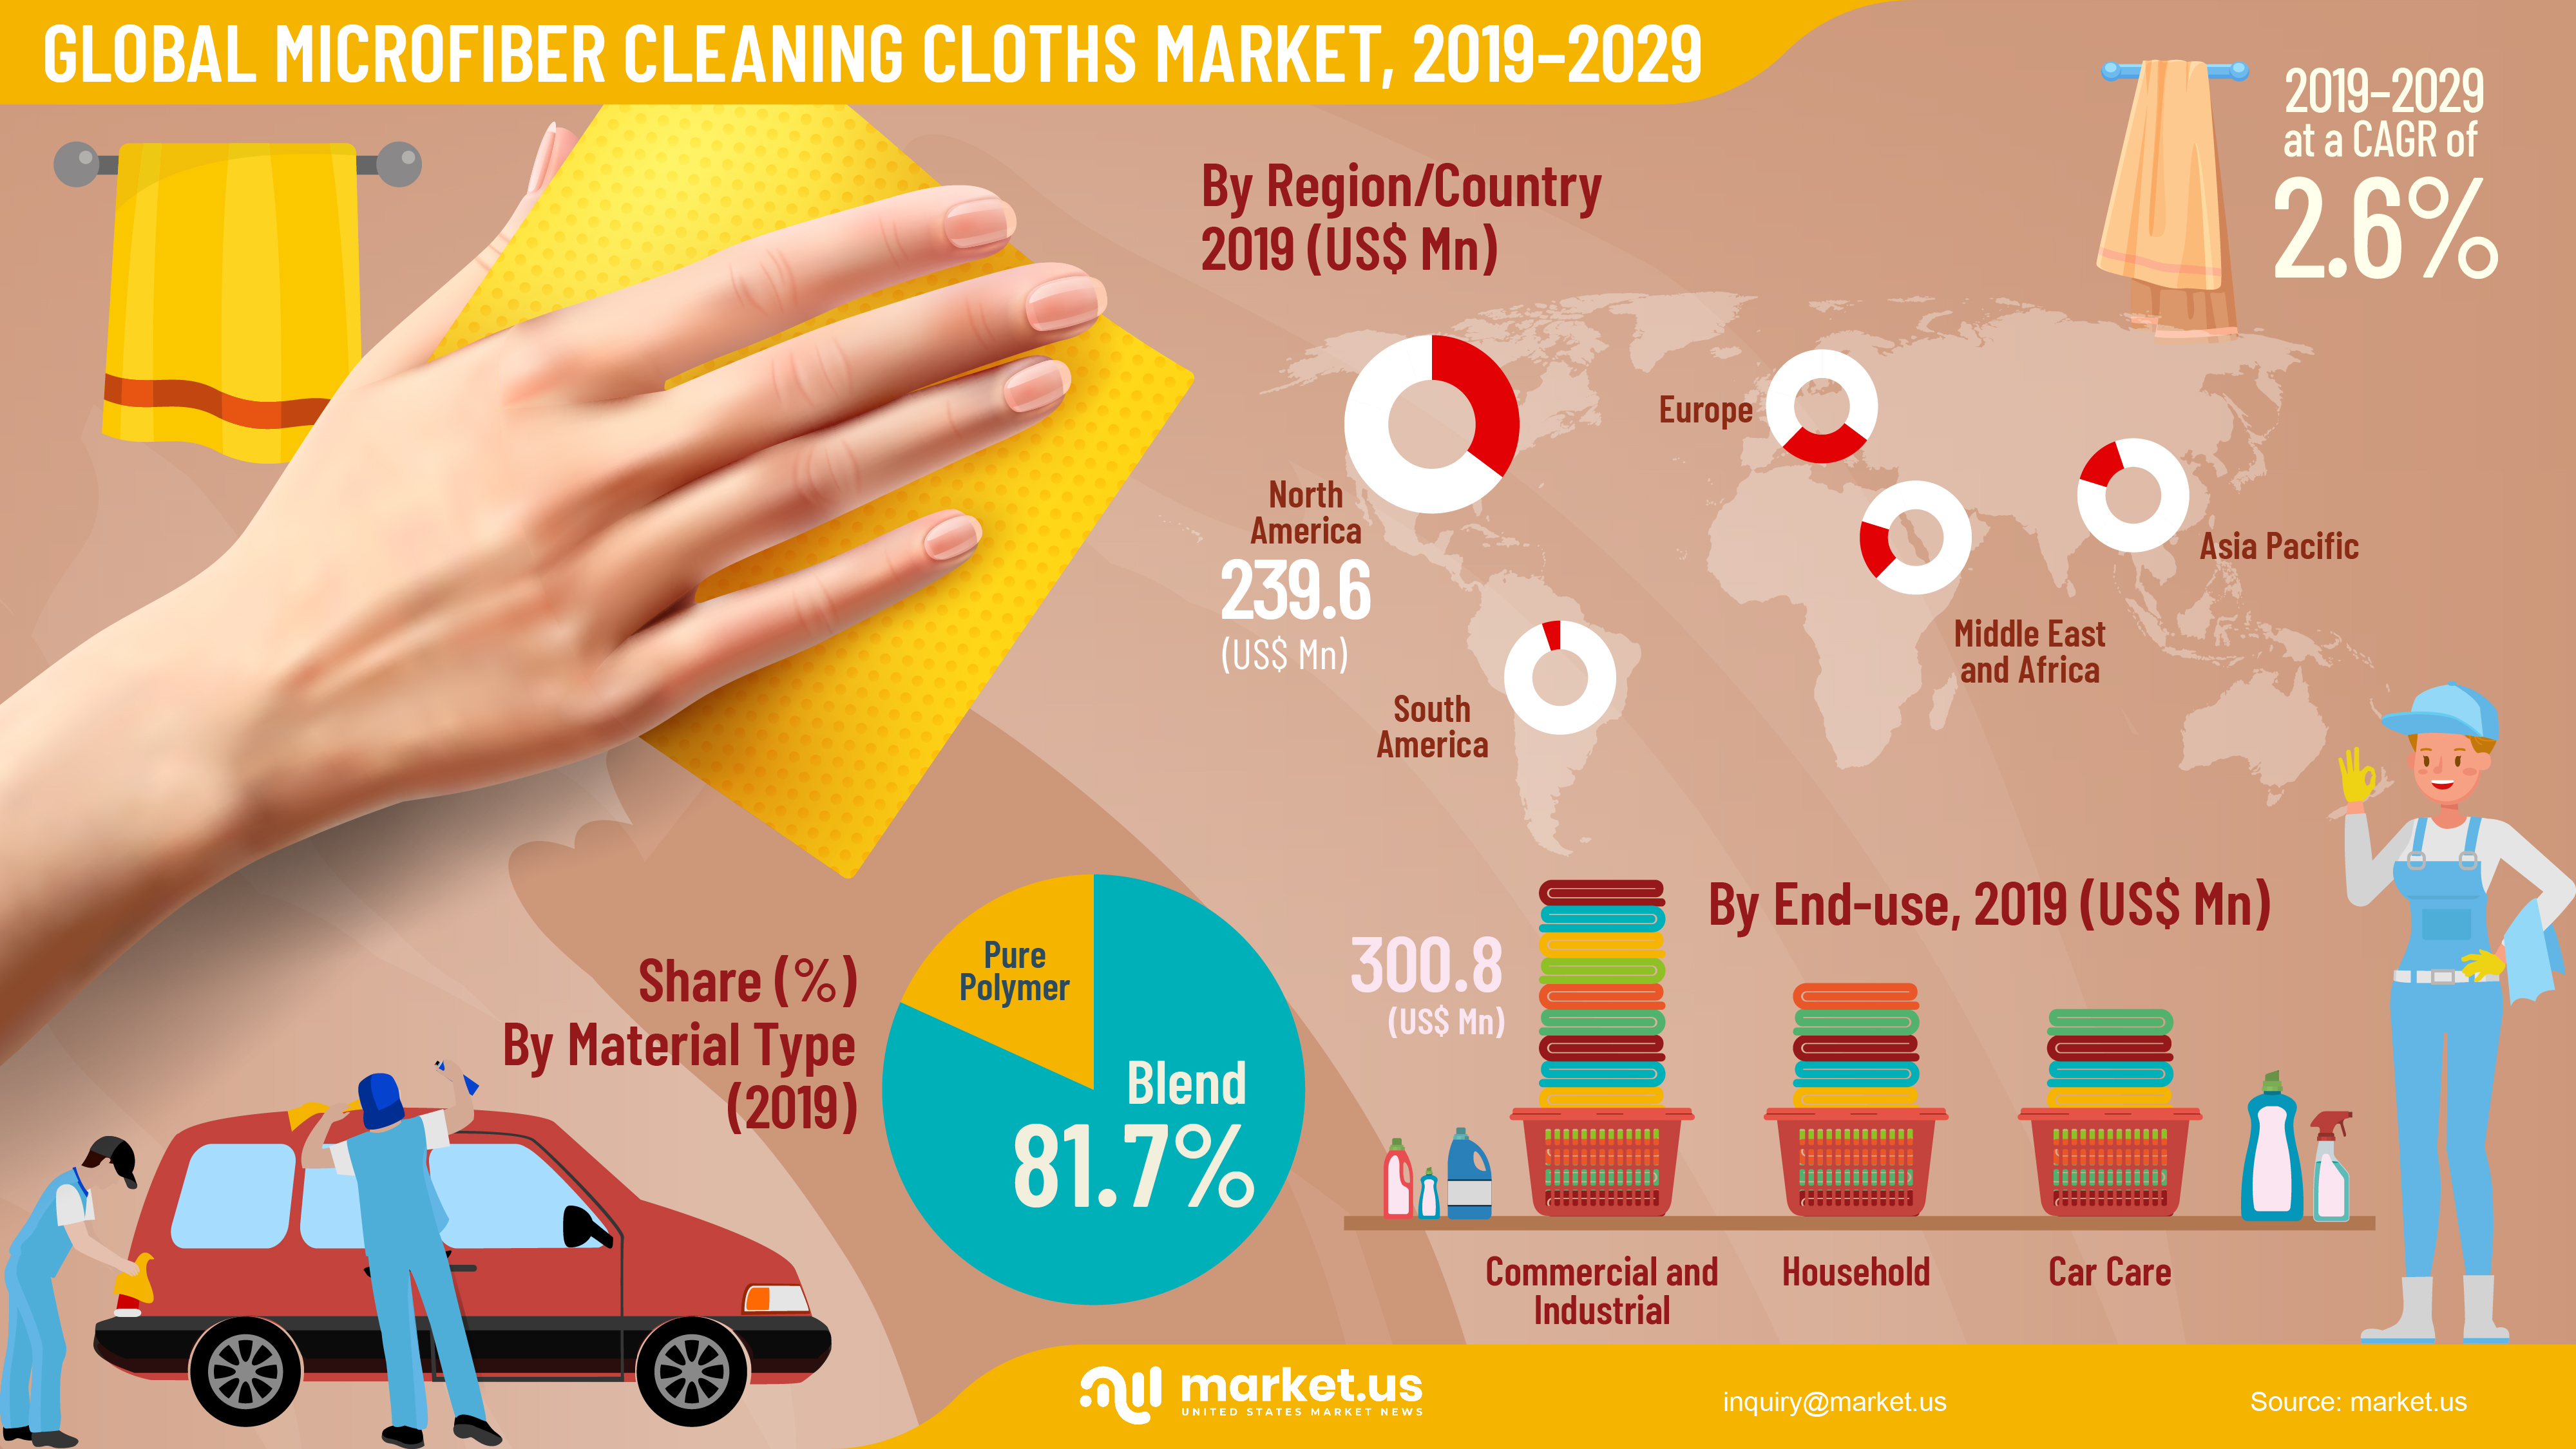 Global Microfiber Cleaning Cloths Market